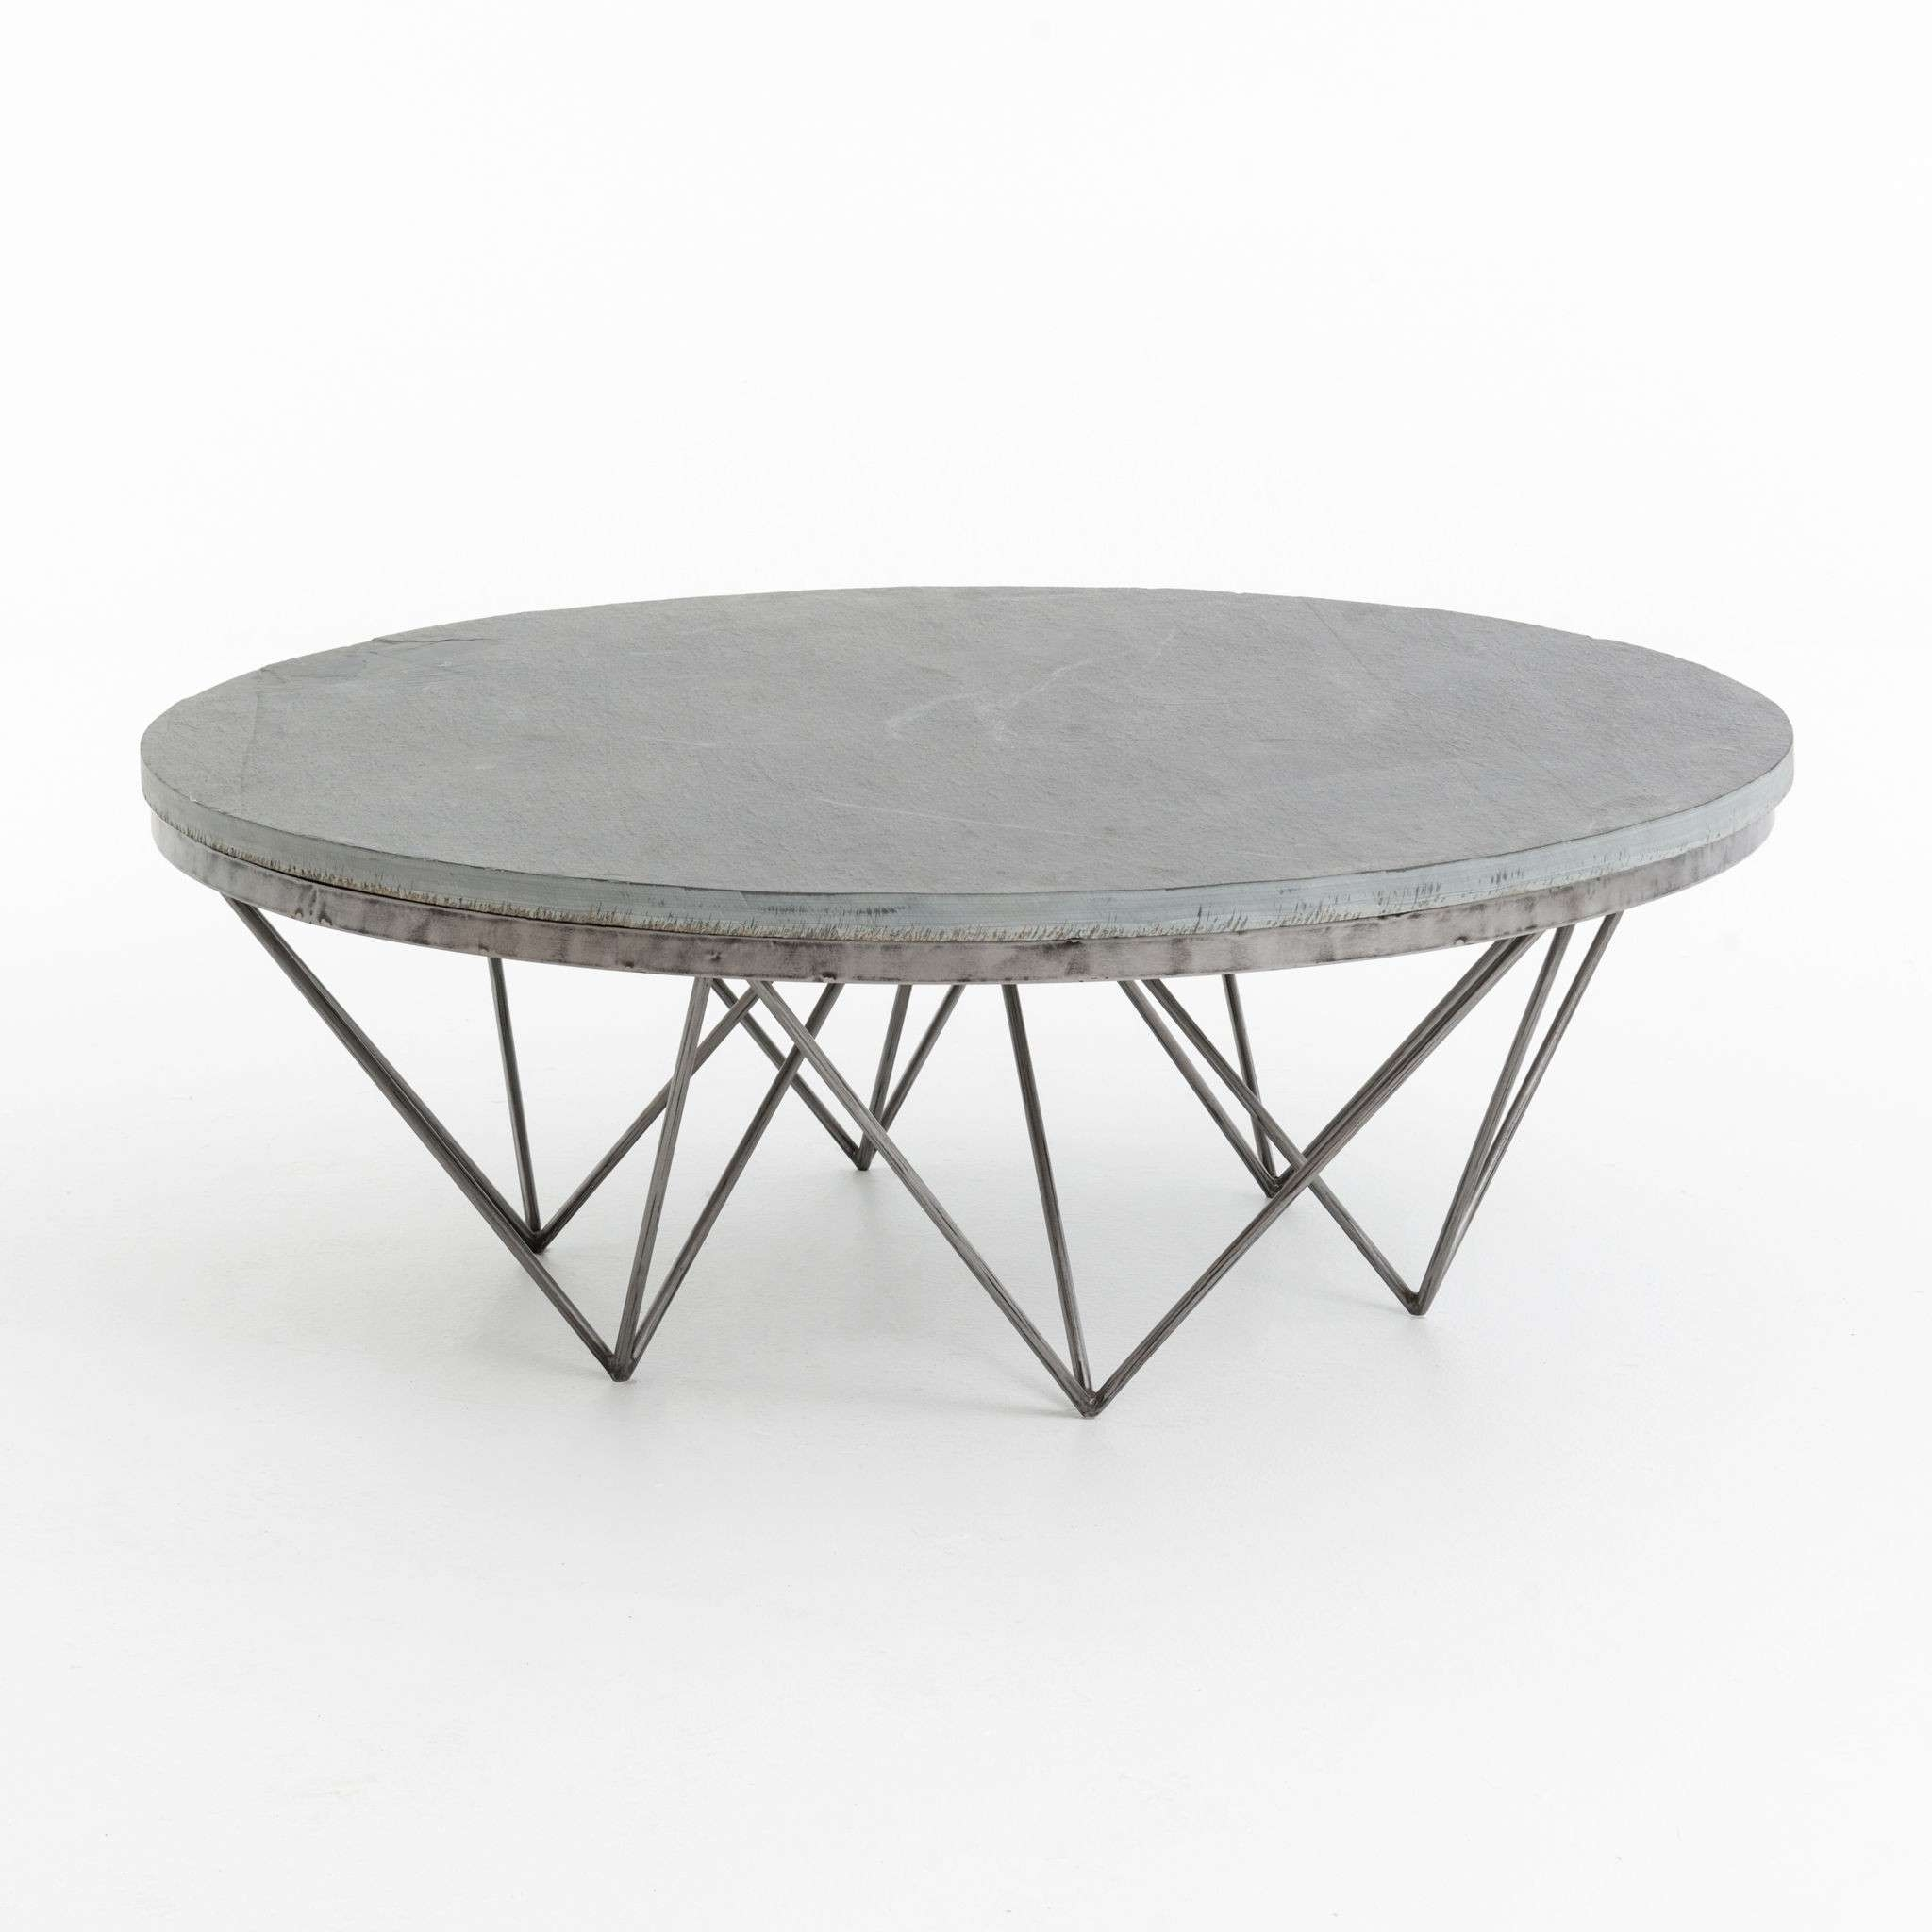 Most Popular Unique Glass Coffee Tables Throughout Coffee Tables : Remarkable Coffee Tables Design Iron Crossed (View 12 of 20)